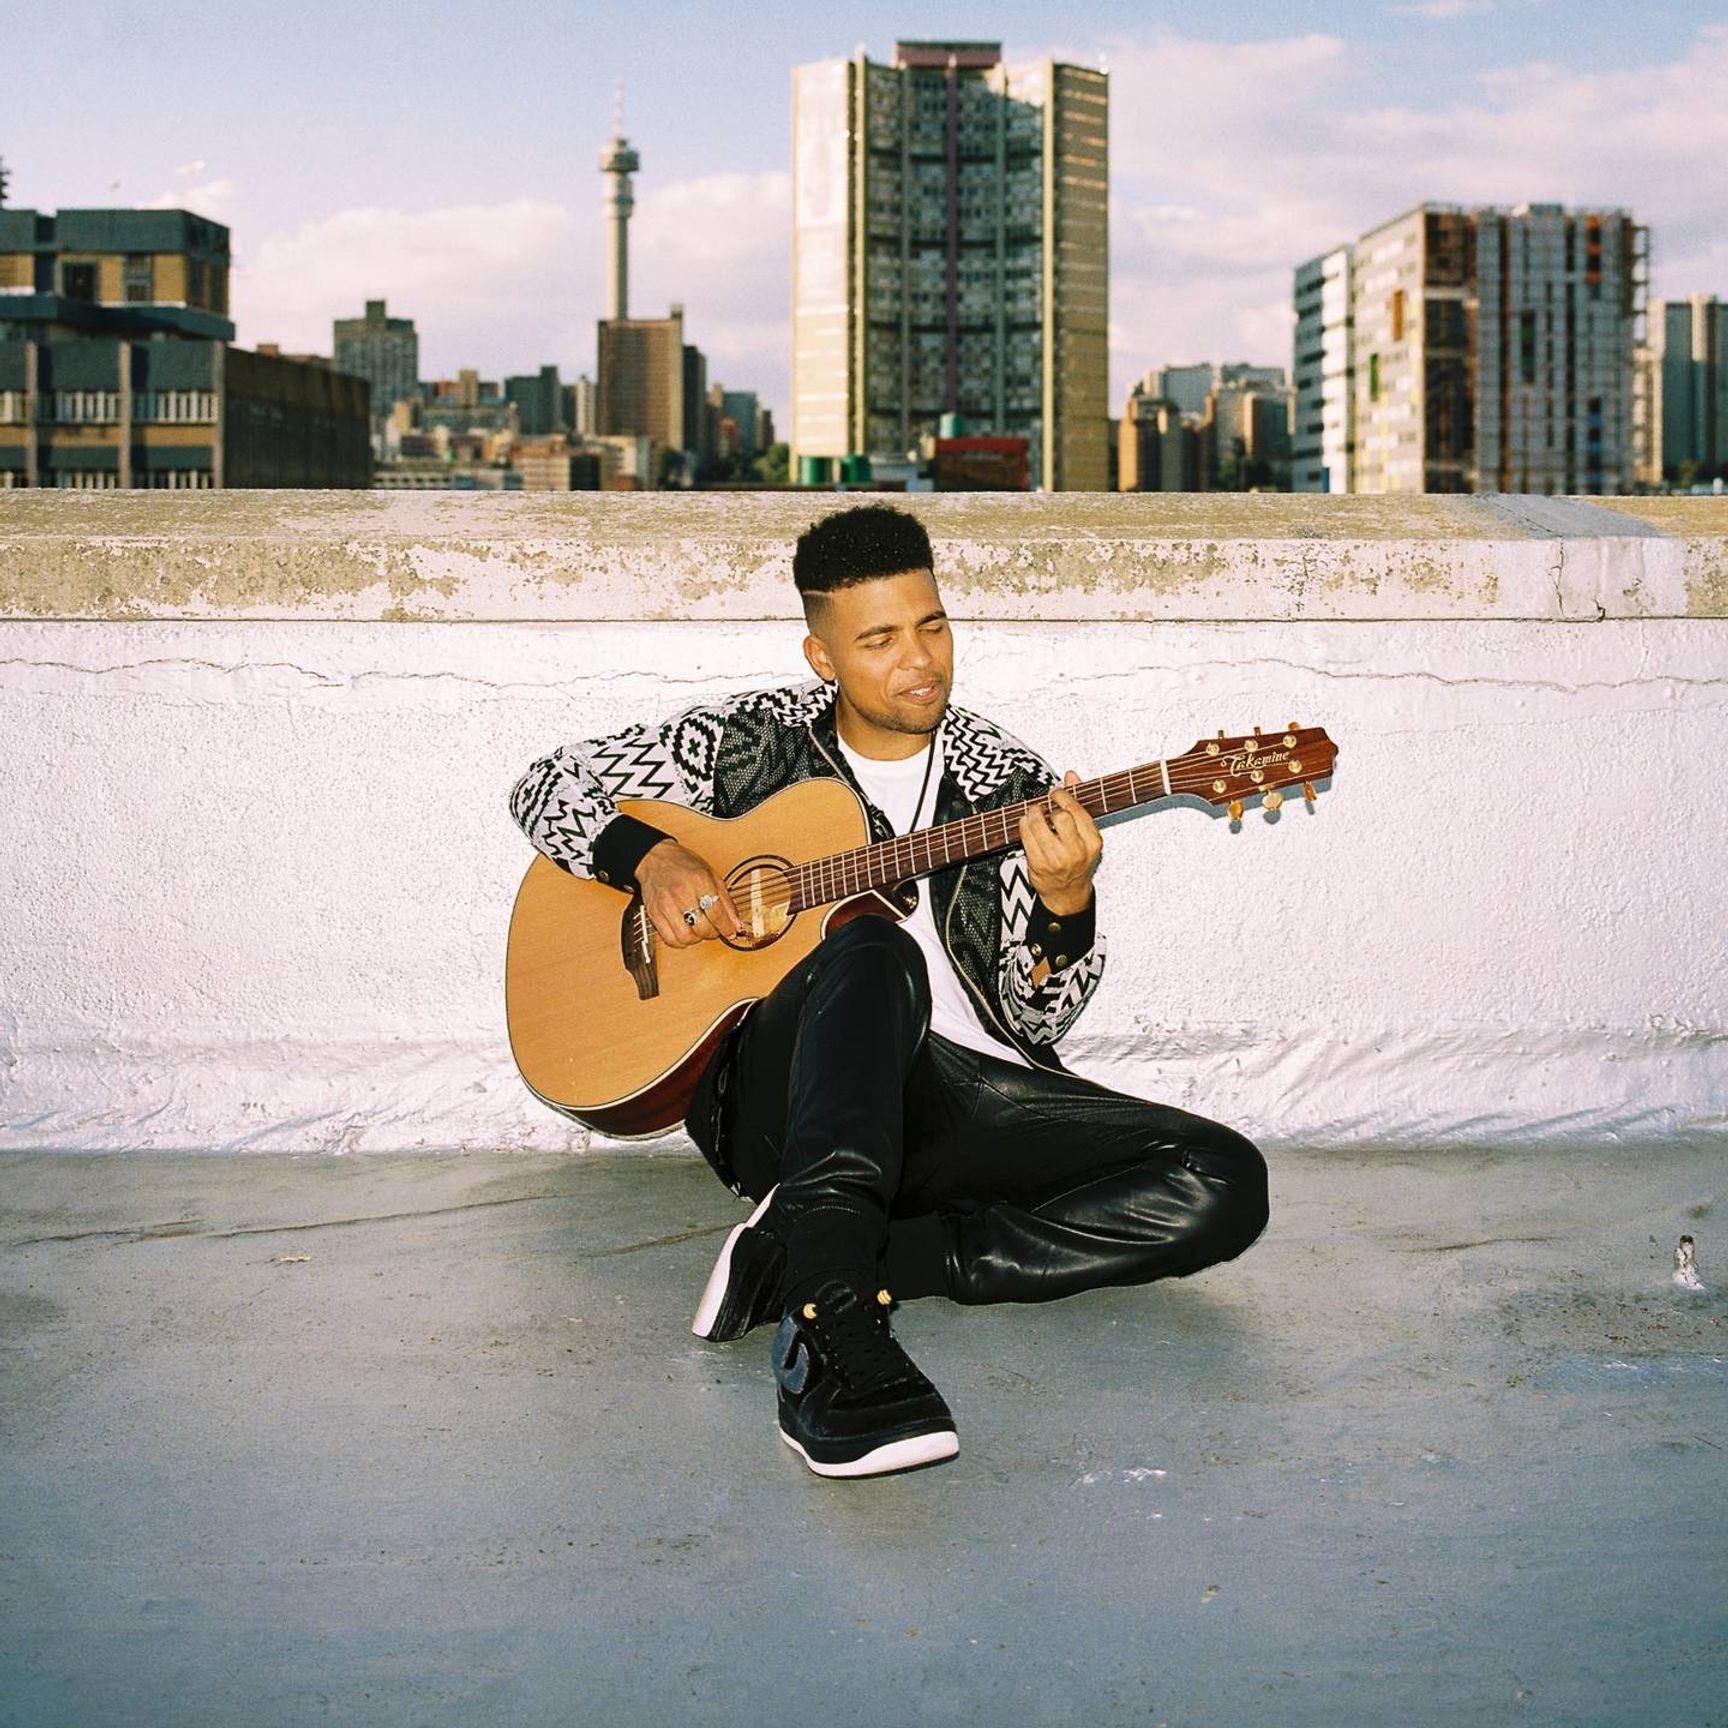 Devon Gilfillian plays guitar on a rooftop. Rewire PBS Our Future